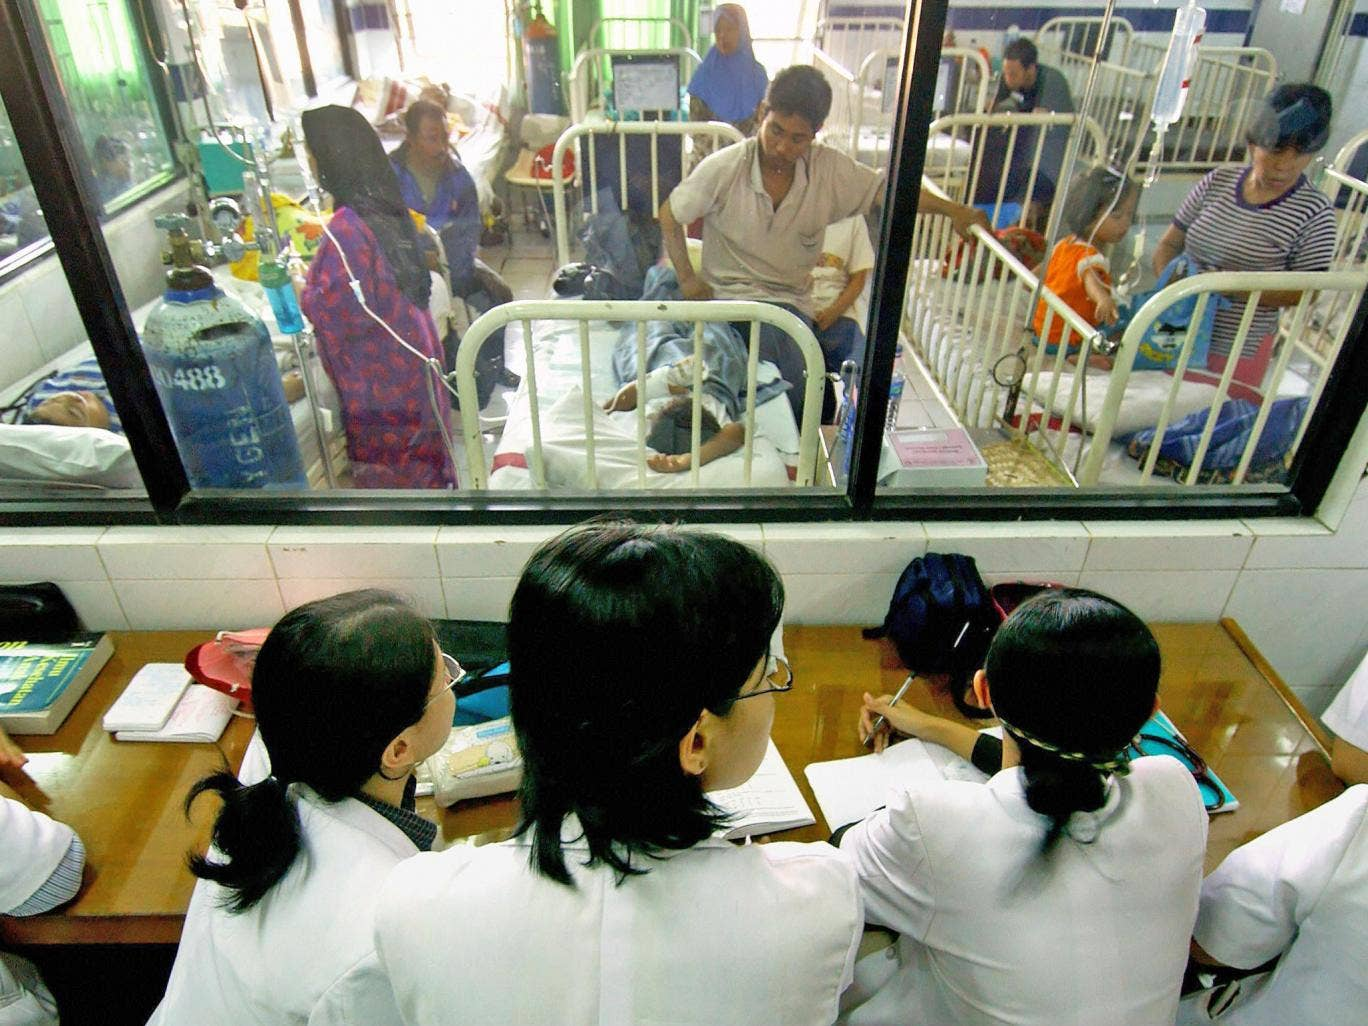 Doctors observe patients suffering from dengue fever during an outbreak of the virus in Jakarta, Indonesia, in 2005. The disease is common in Asia